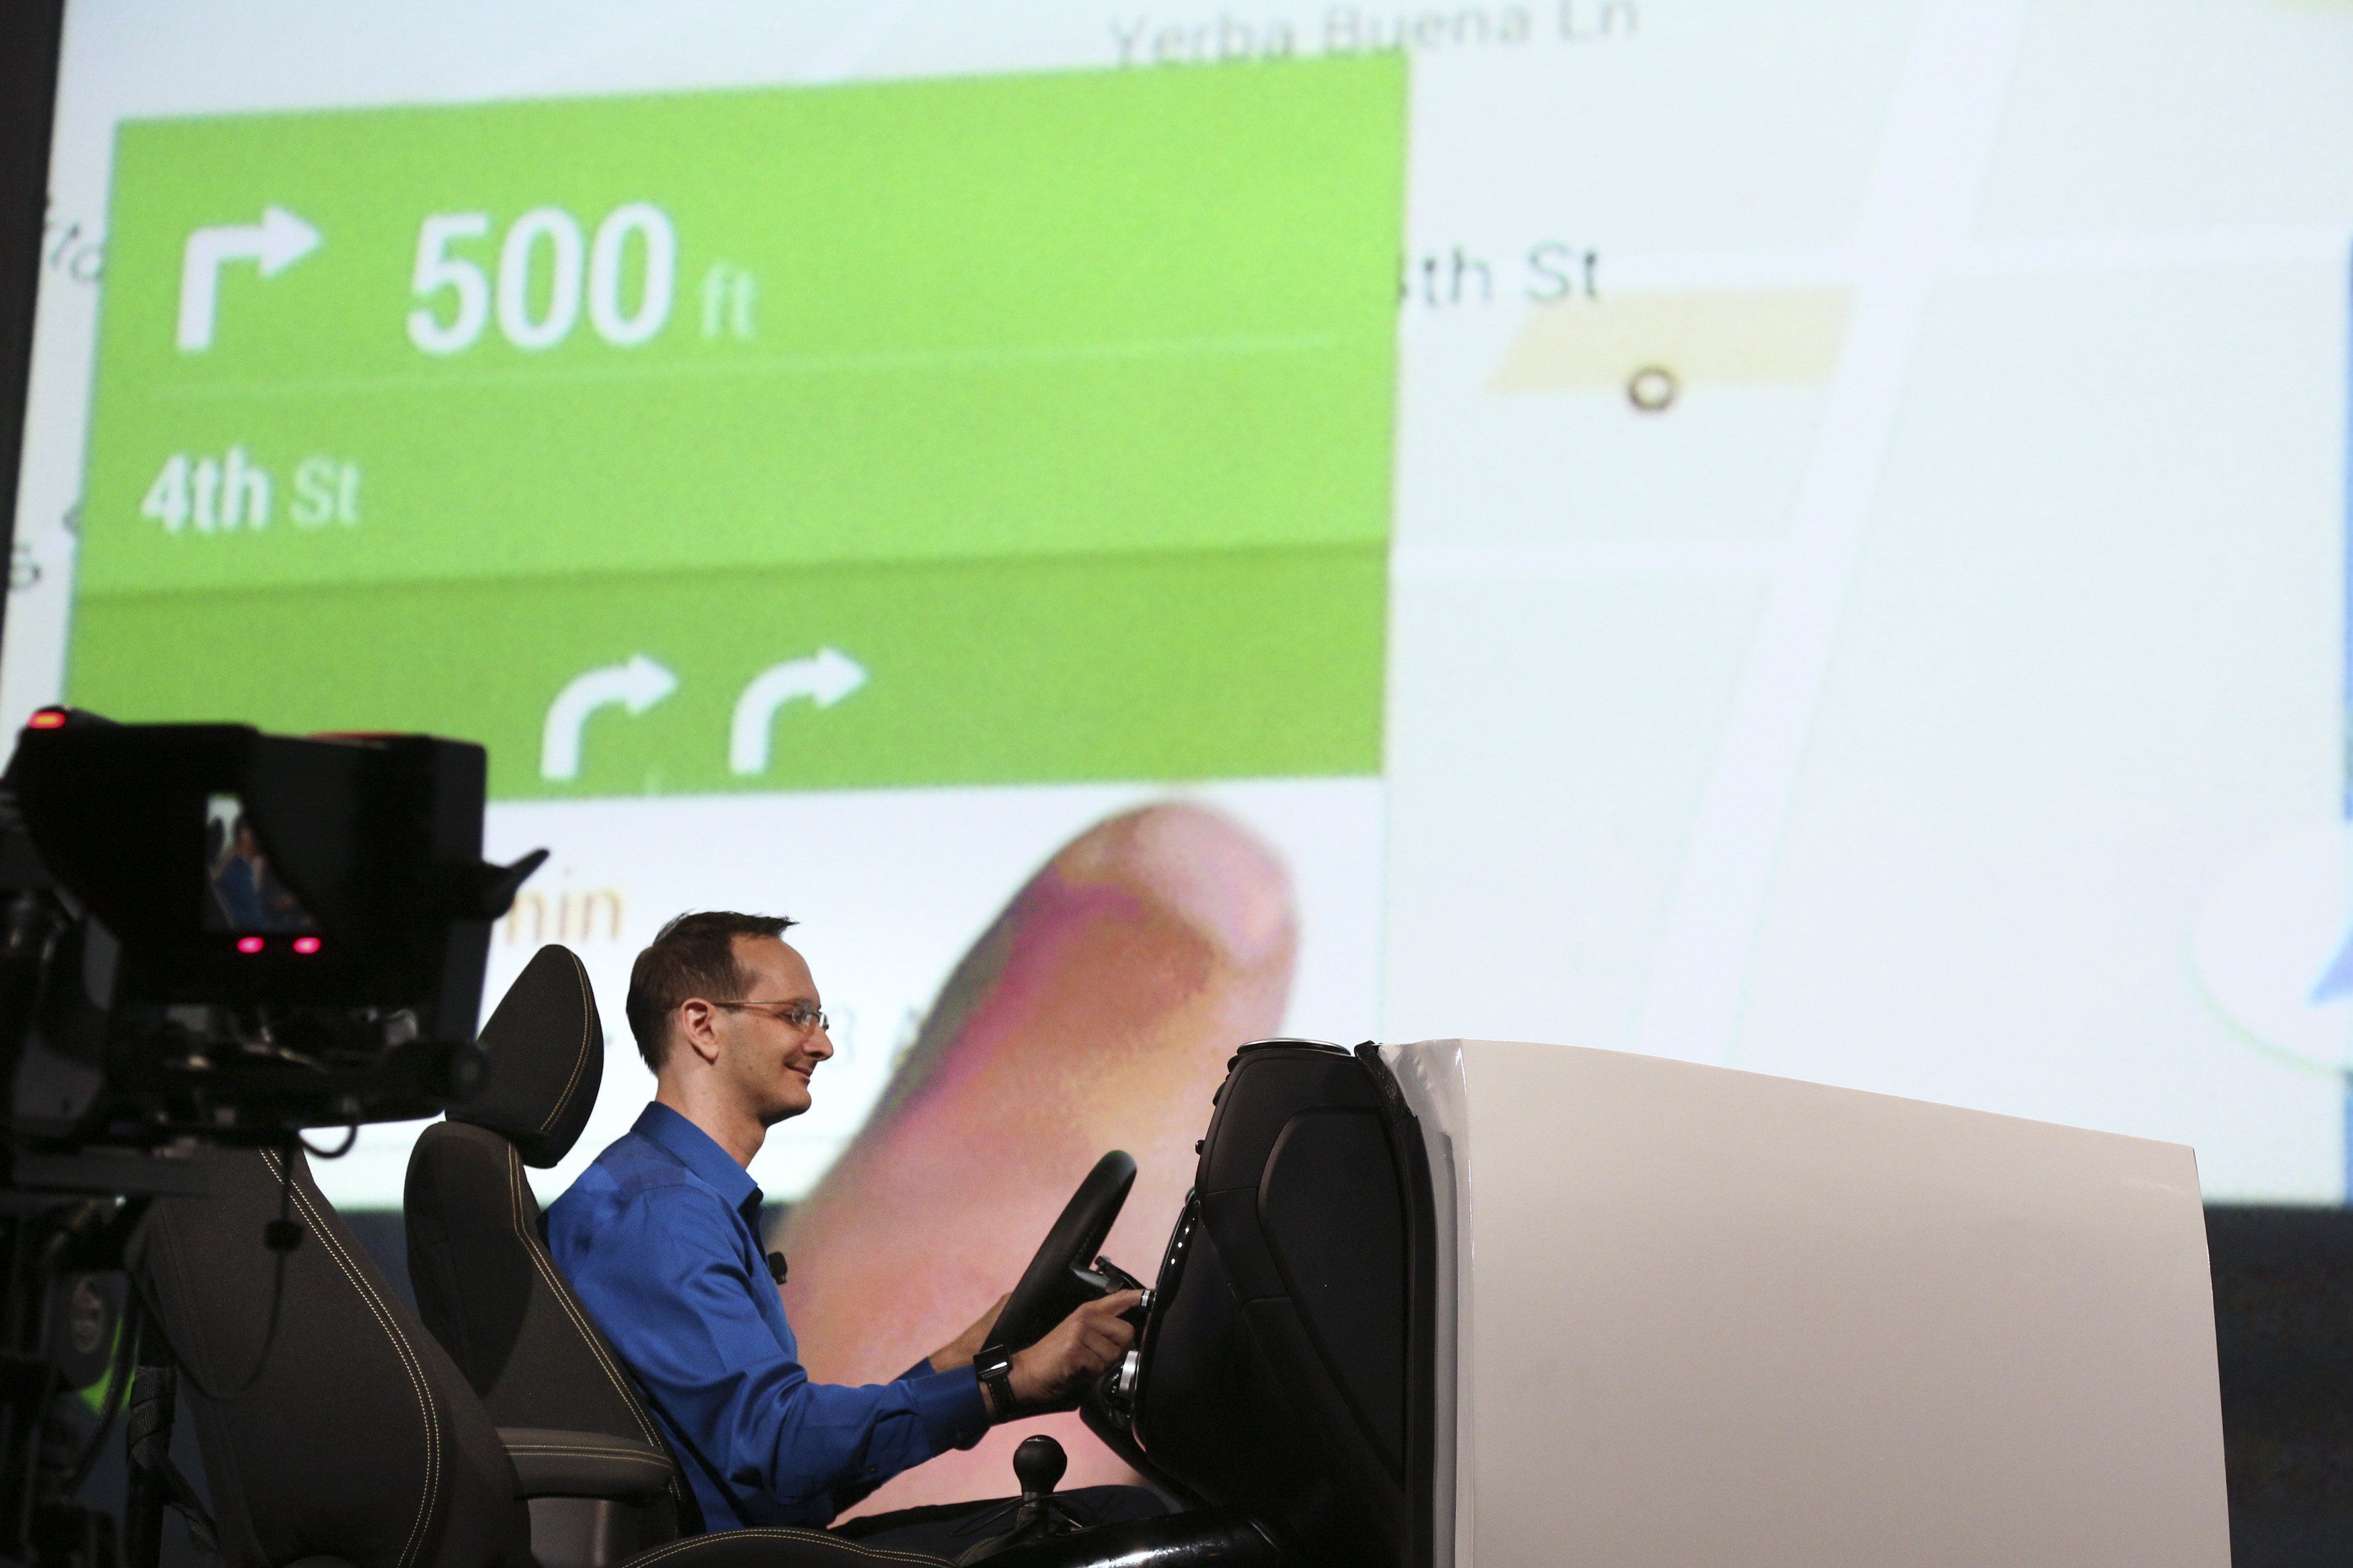 A Google employee demonstrates Android Auto onstage at the Google I/O developers conference in San Francisco